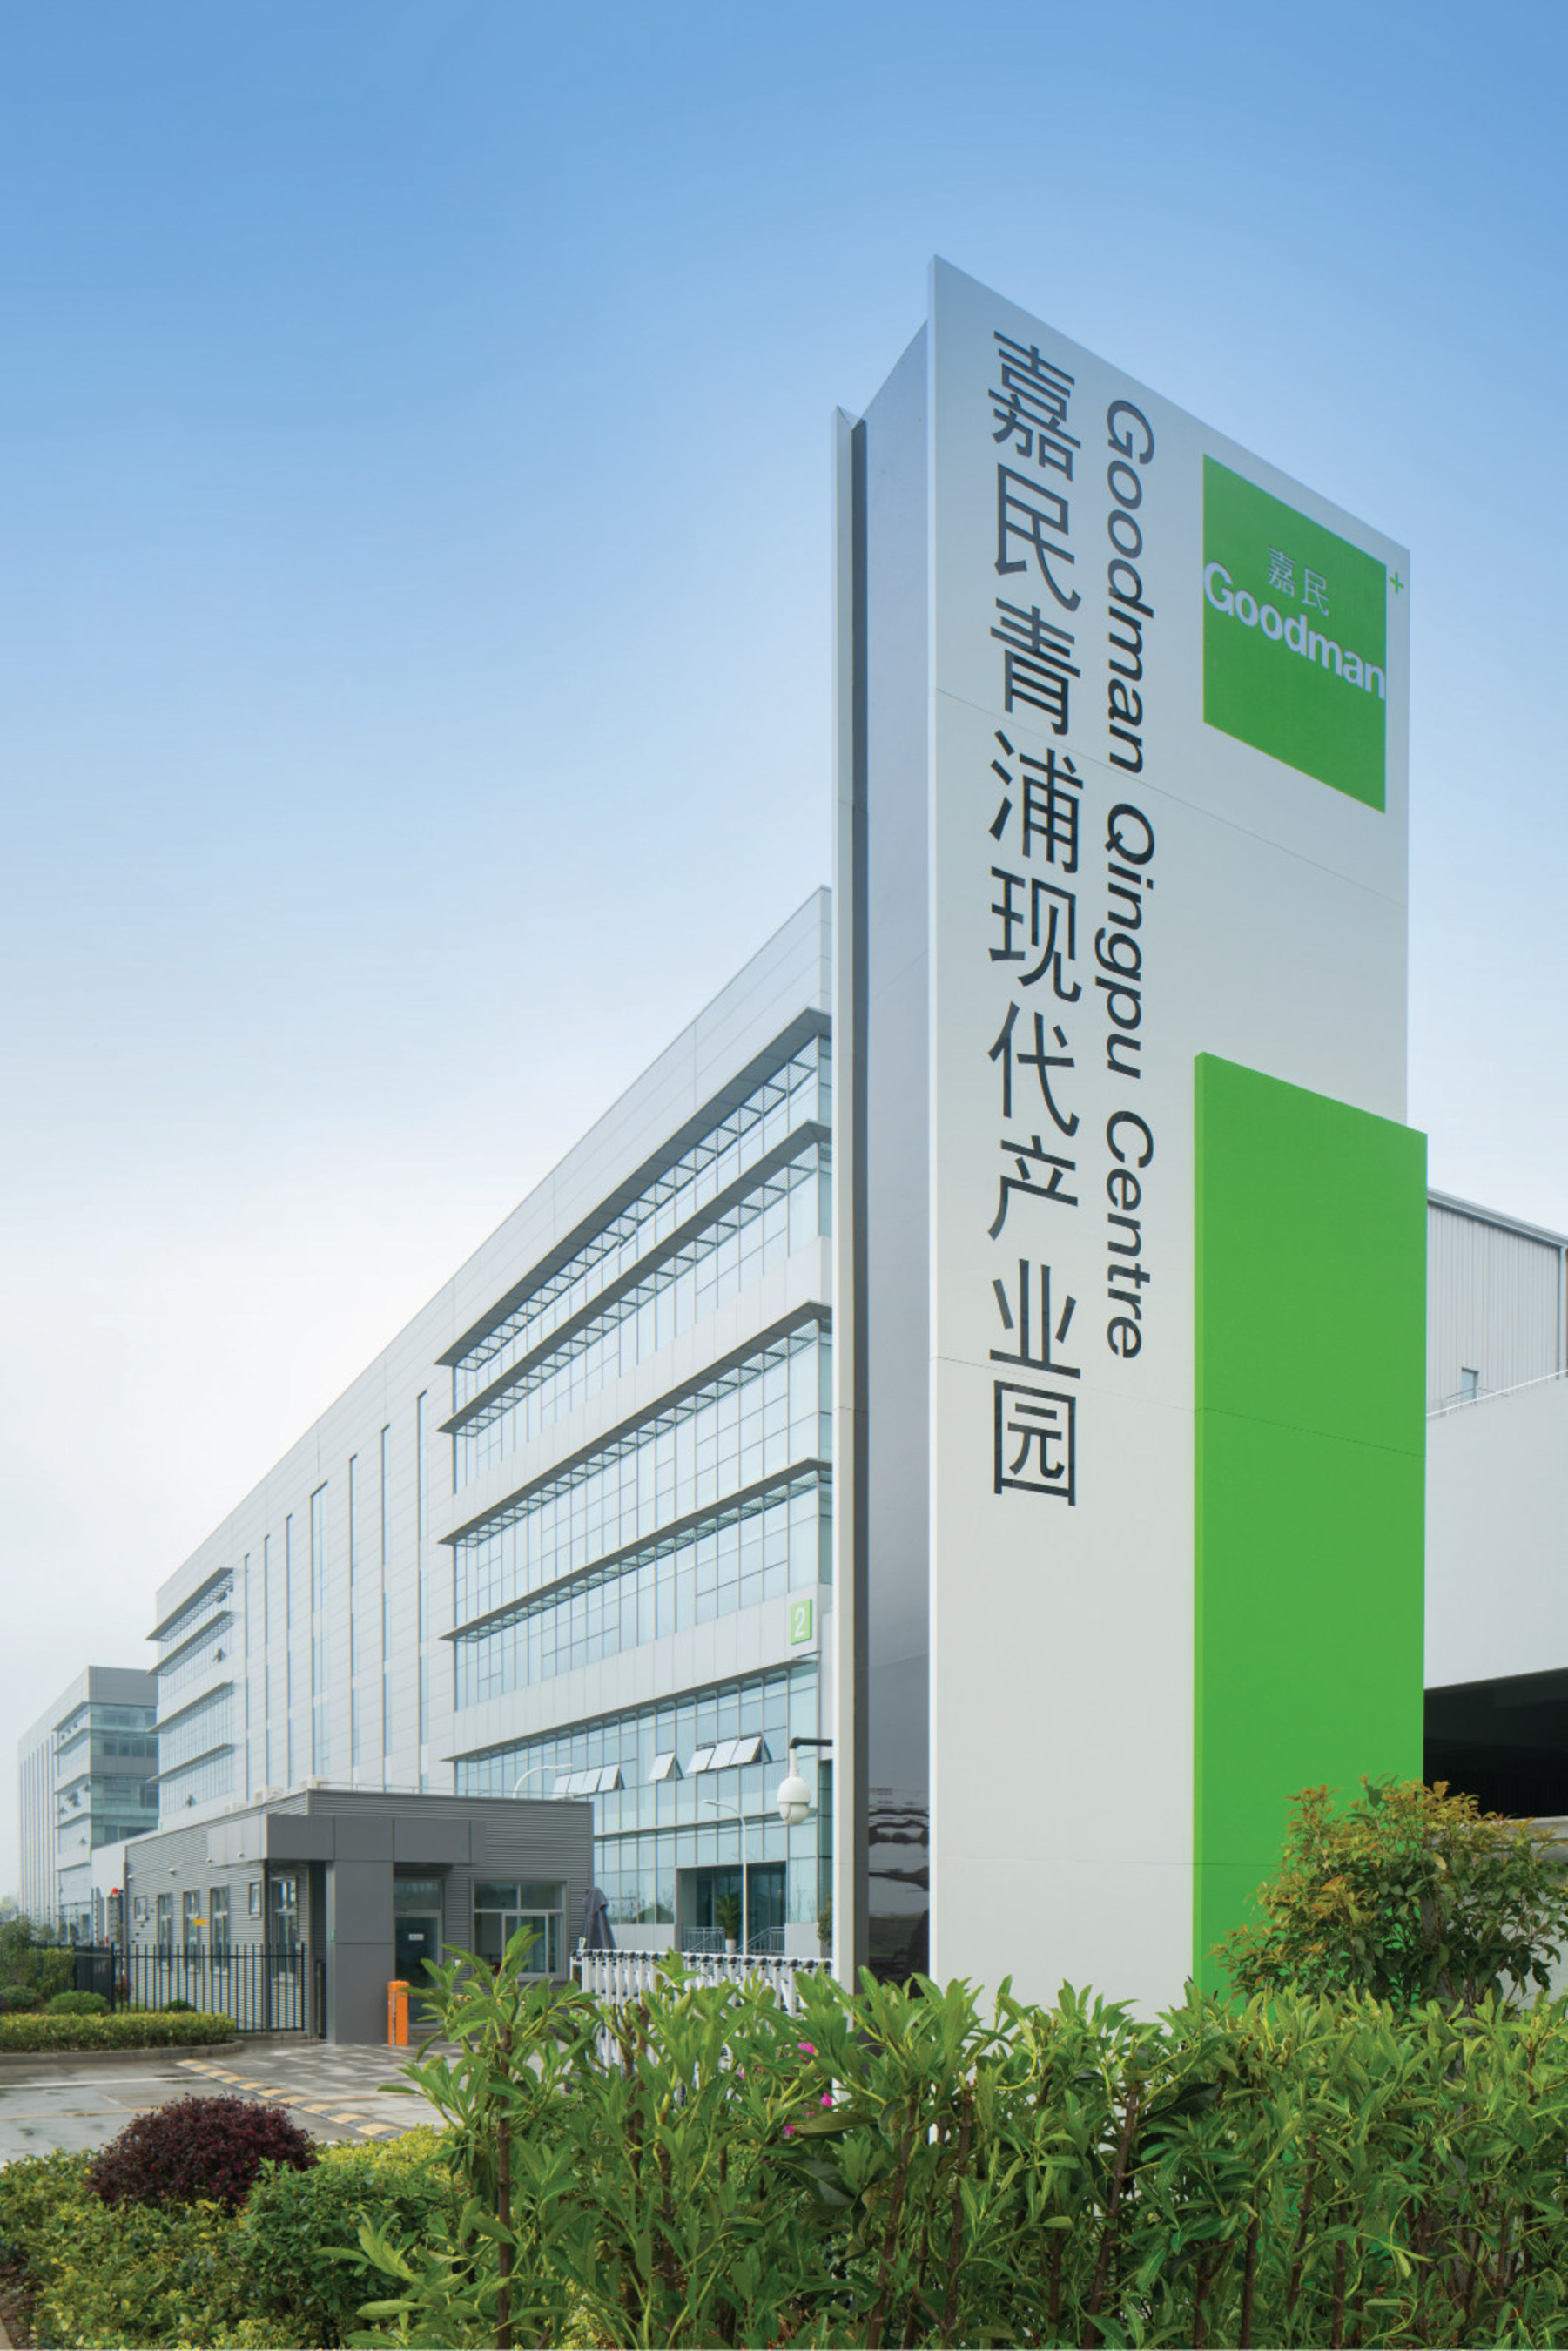 Goodman Qingpu Centre, Landmark Industrial and Business Facility in Shanghai, Officially Opened by the Minister for Trade and Investment of Australia